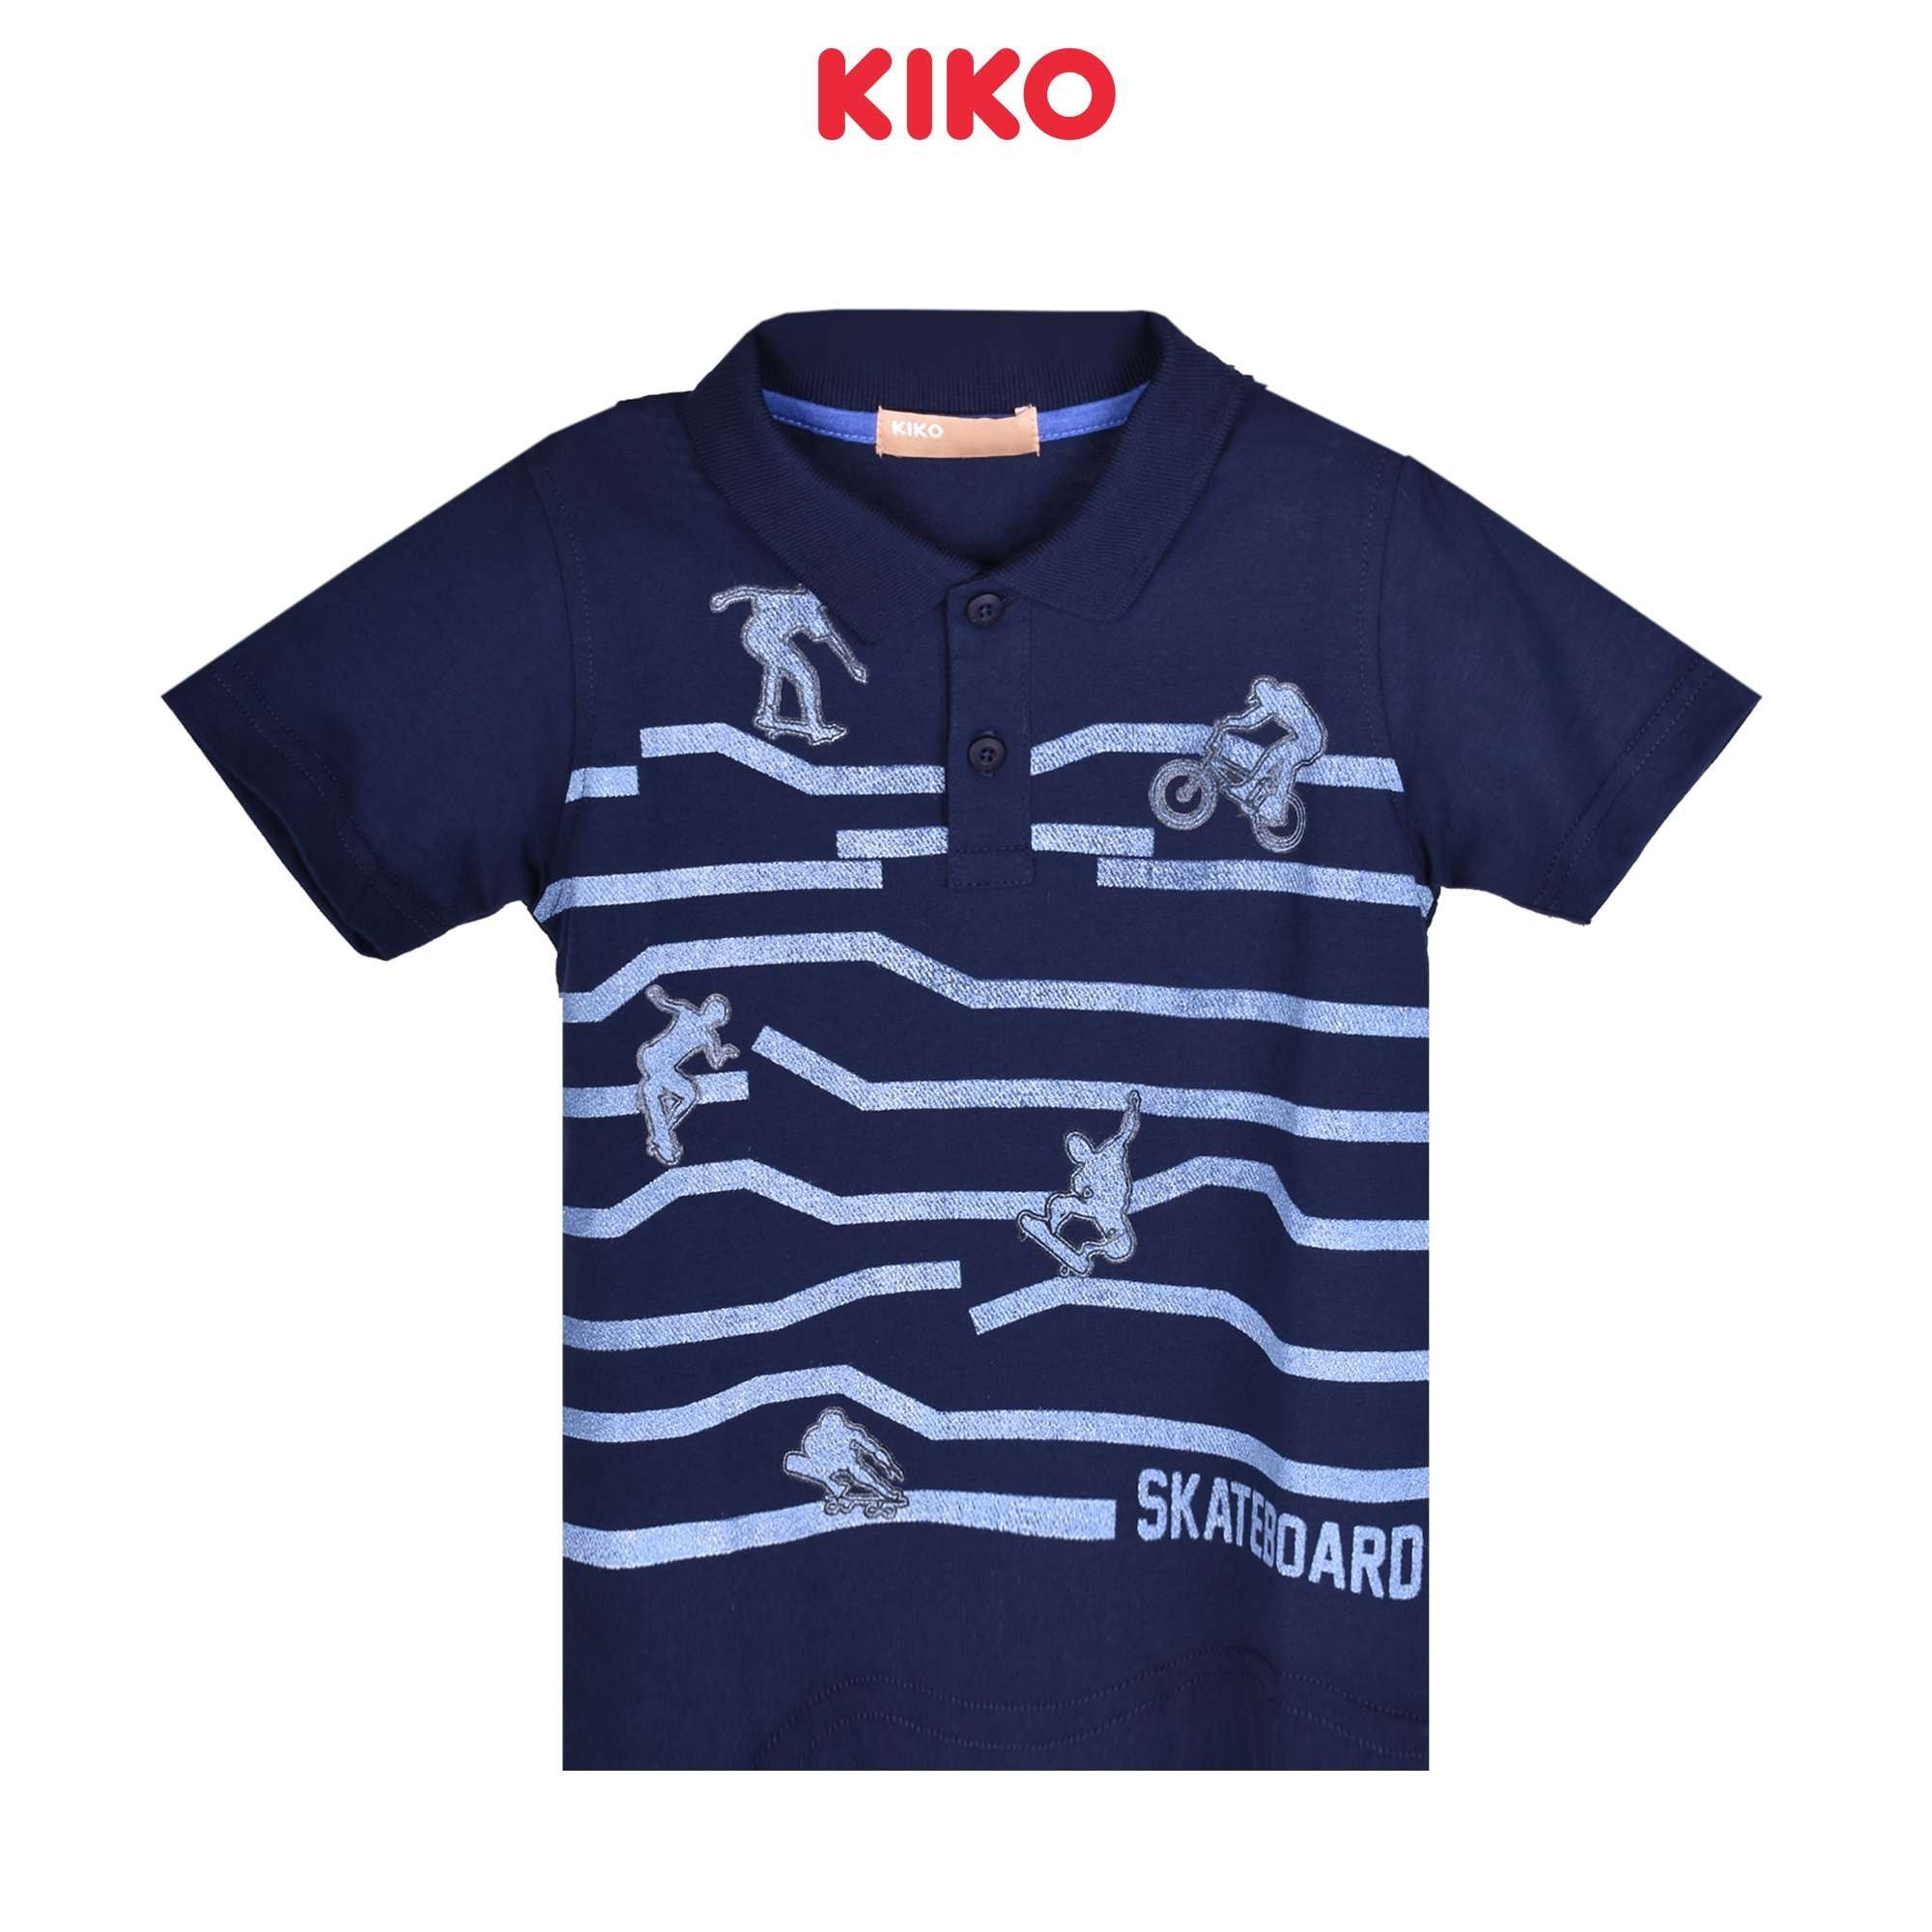 KIKO Boy Short Sleeve Collar Tee 130088-121 : Buy KIKO online at CMG.MY